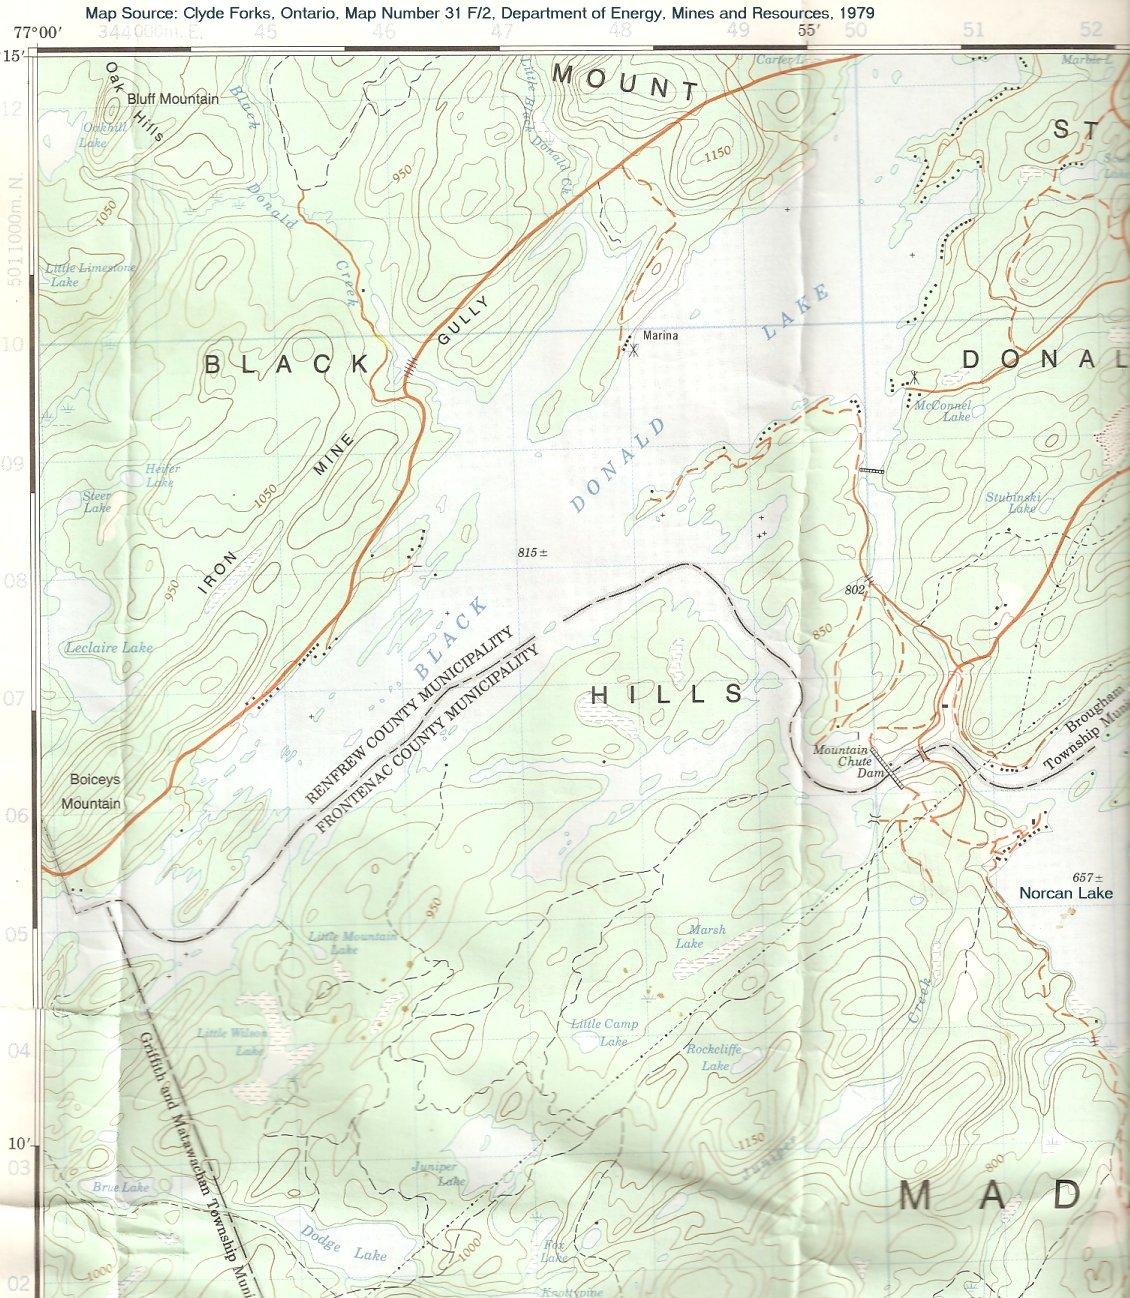 Mountain Chute Map - Madawaska River, Ontario, Canada